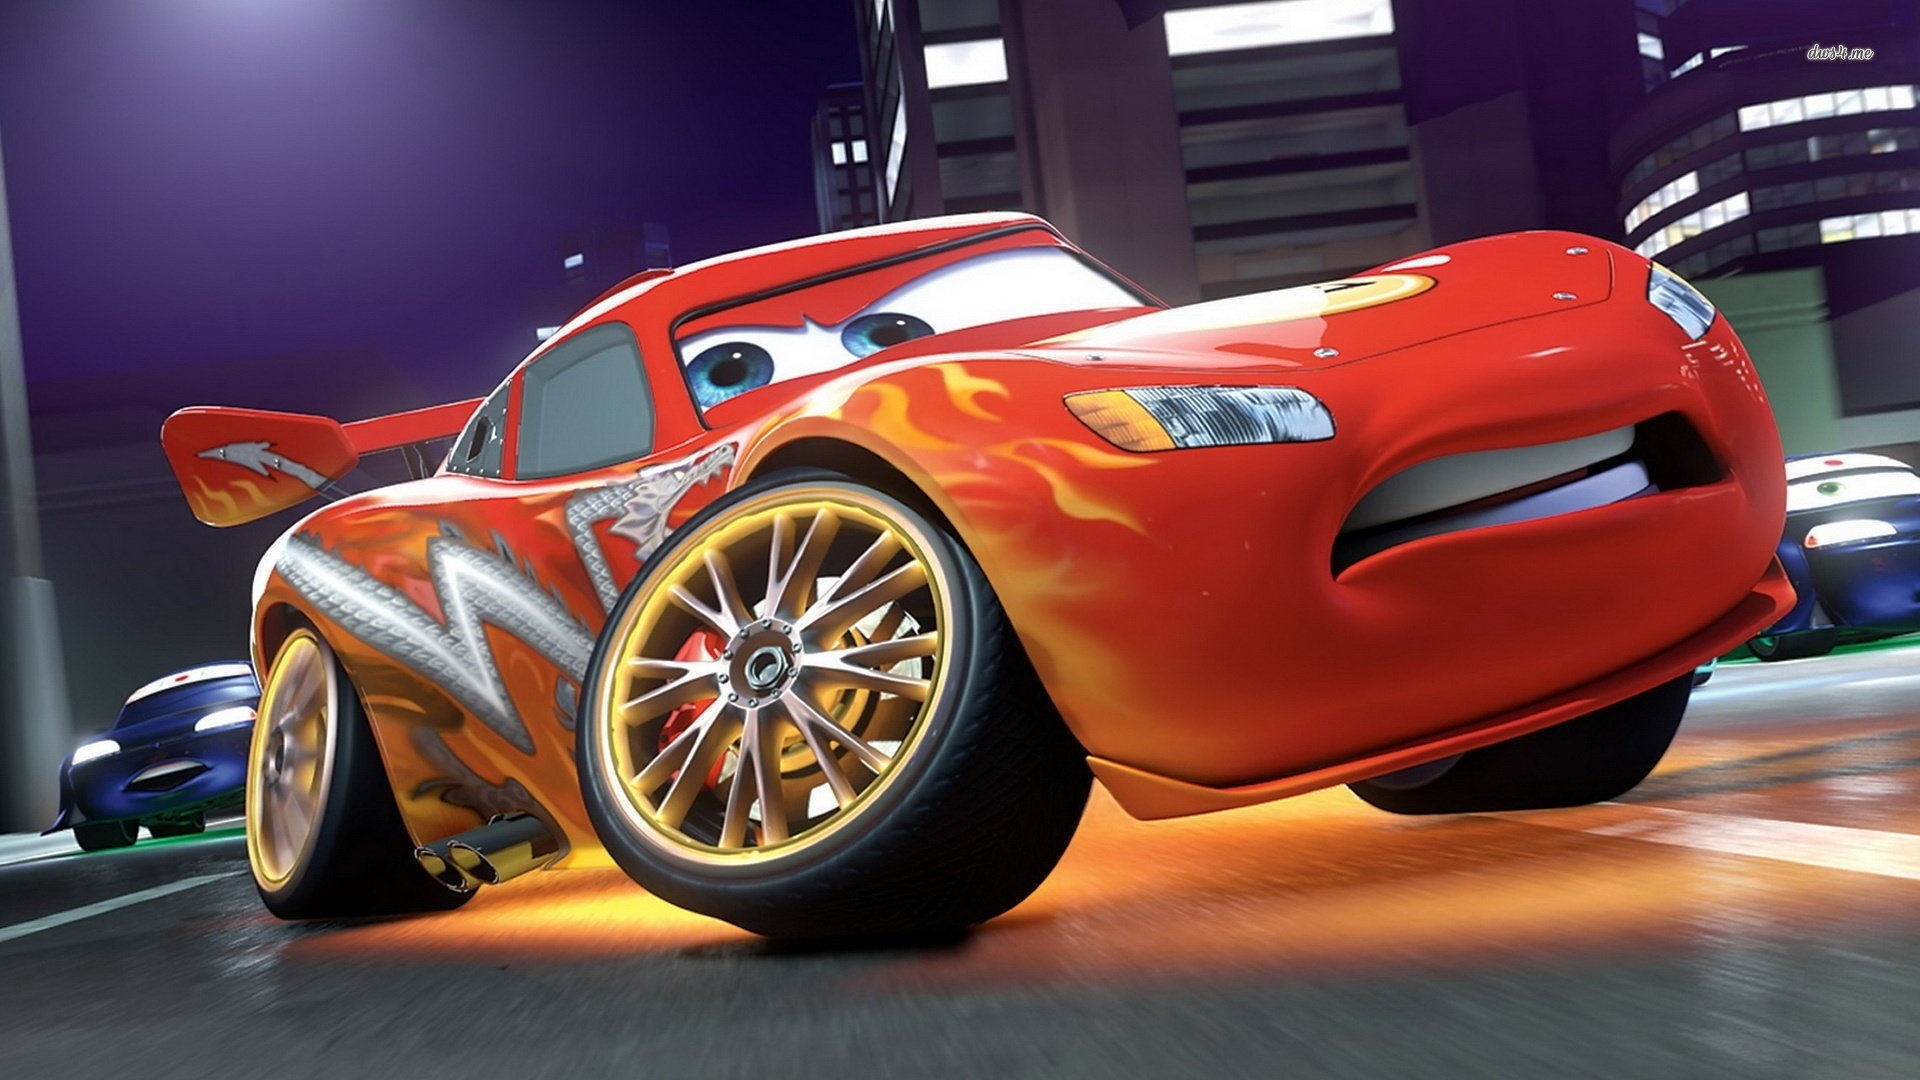 Cars Movie Wallpapers 1920x1080 Full Hd 1080p Desktop